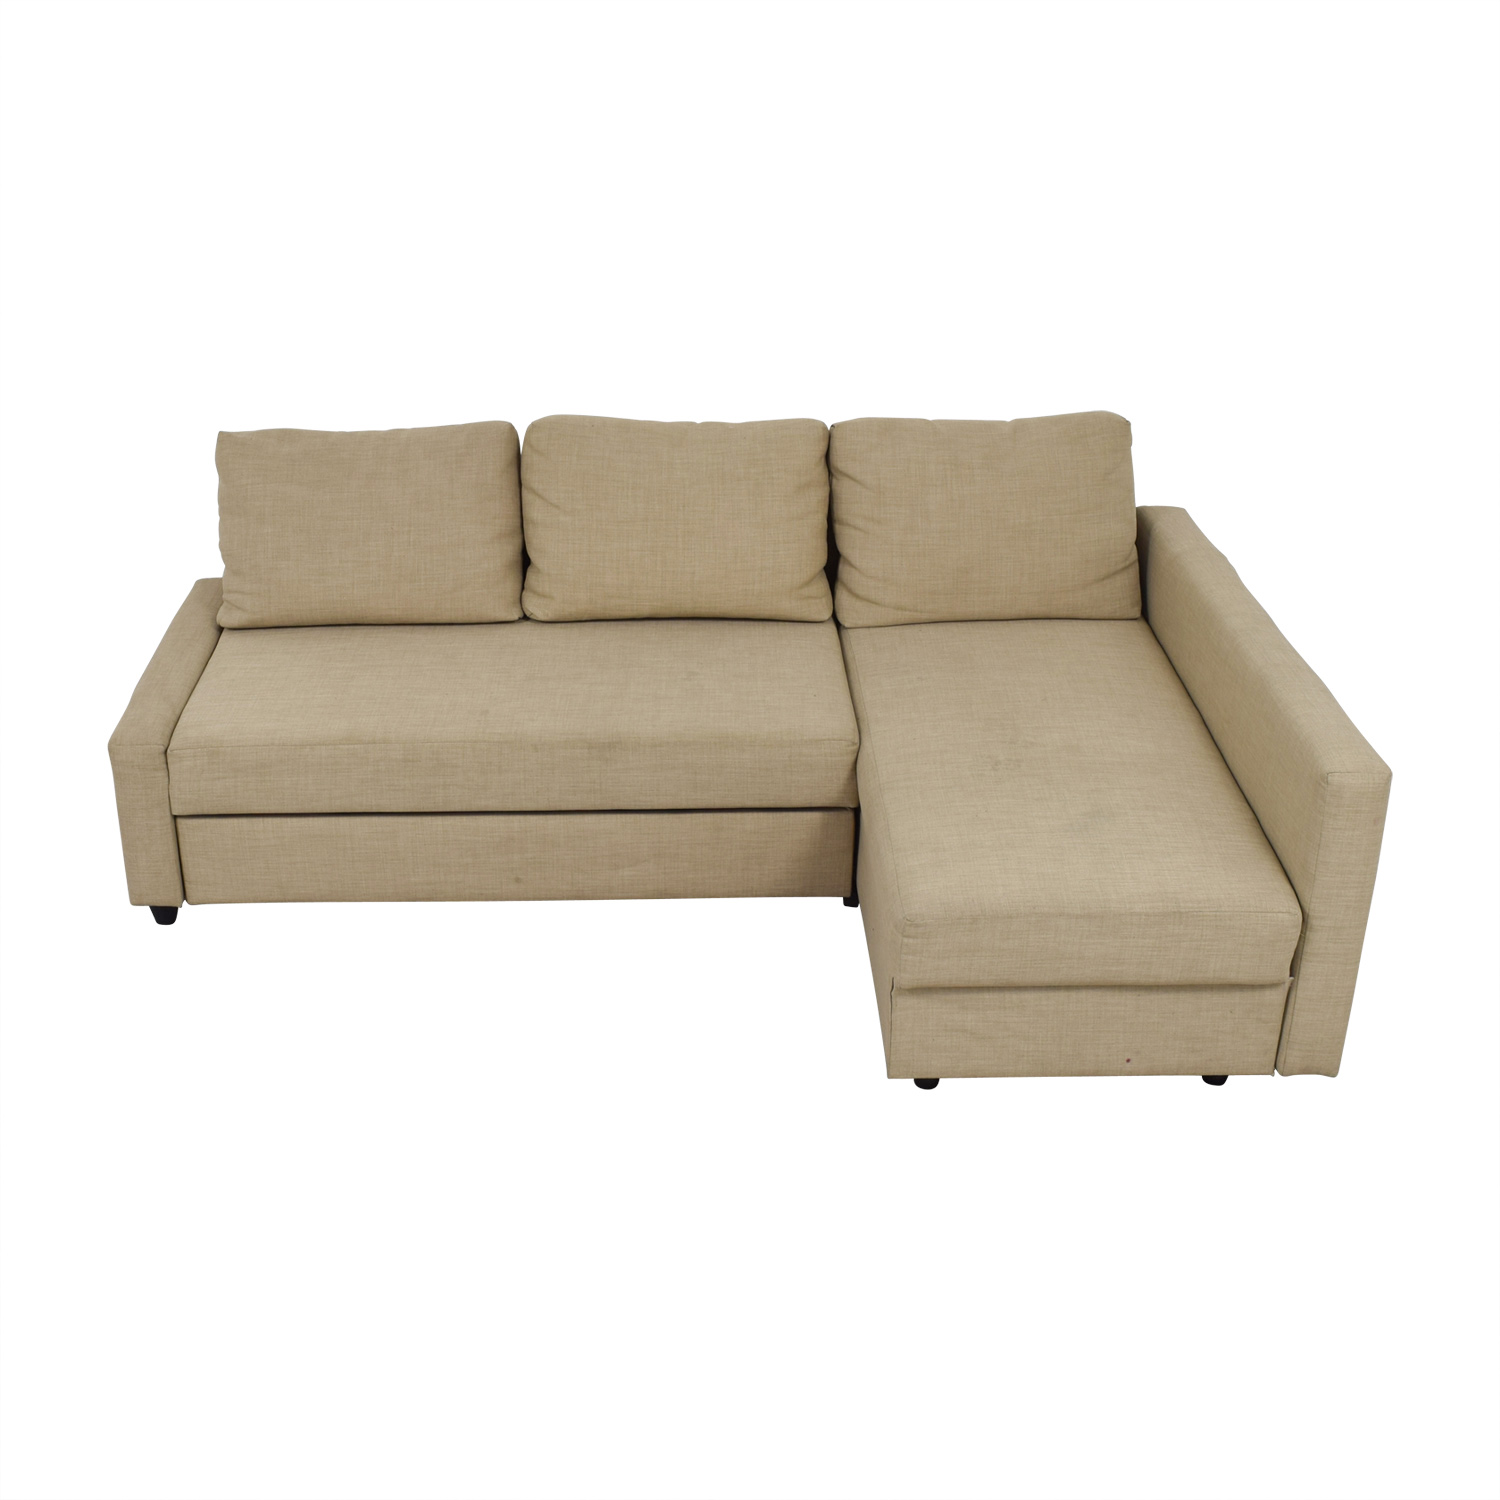 IKEA IKEA Friheten Beige Sleeper Sectional used